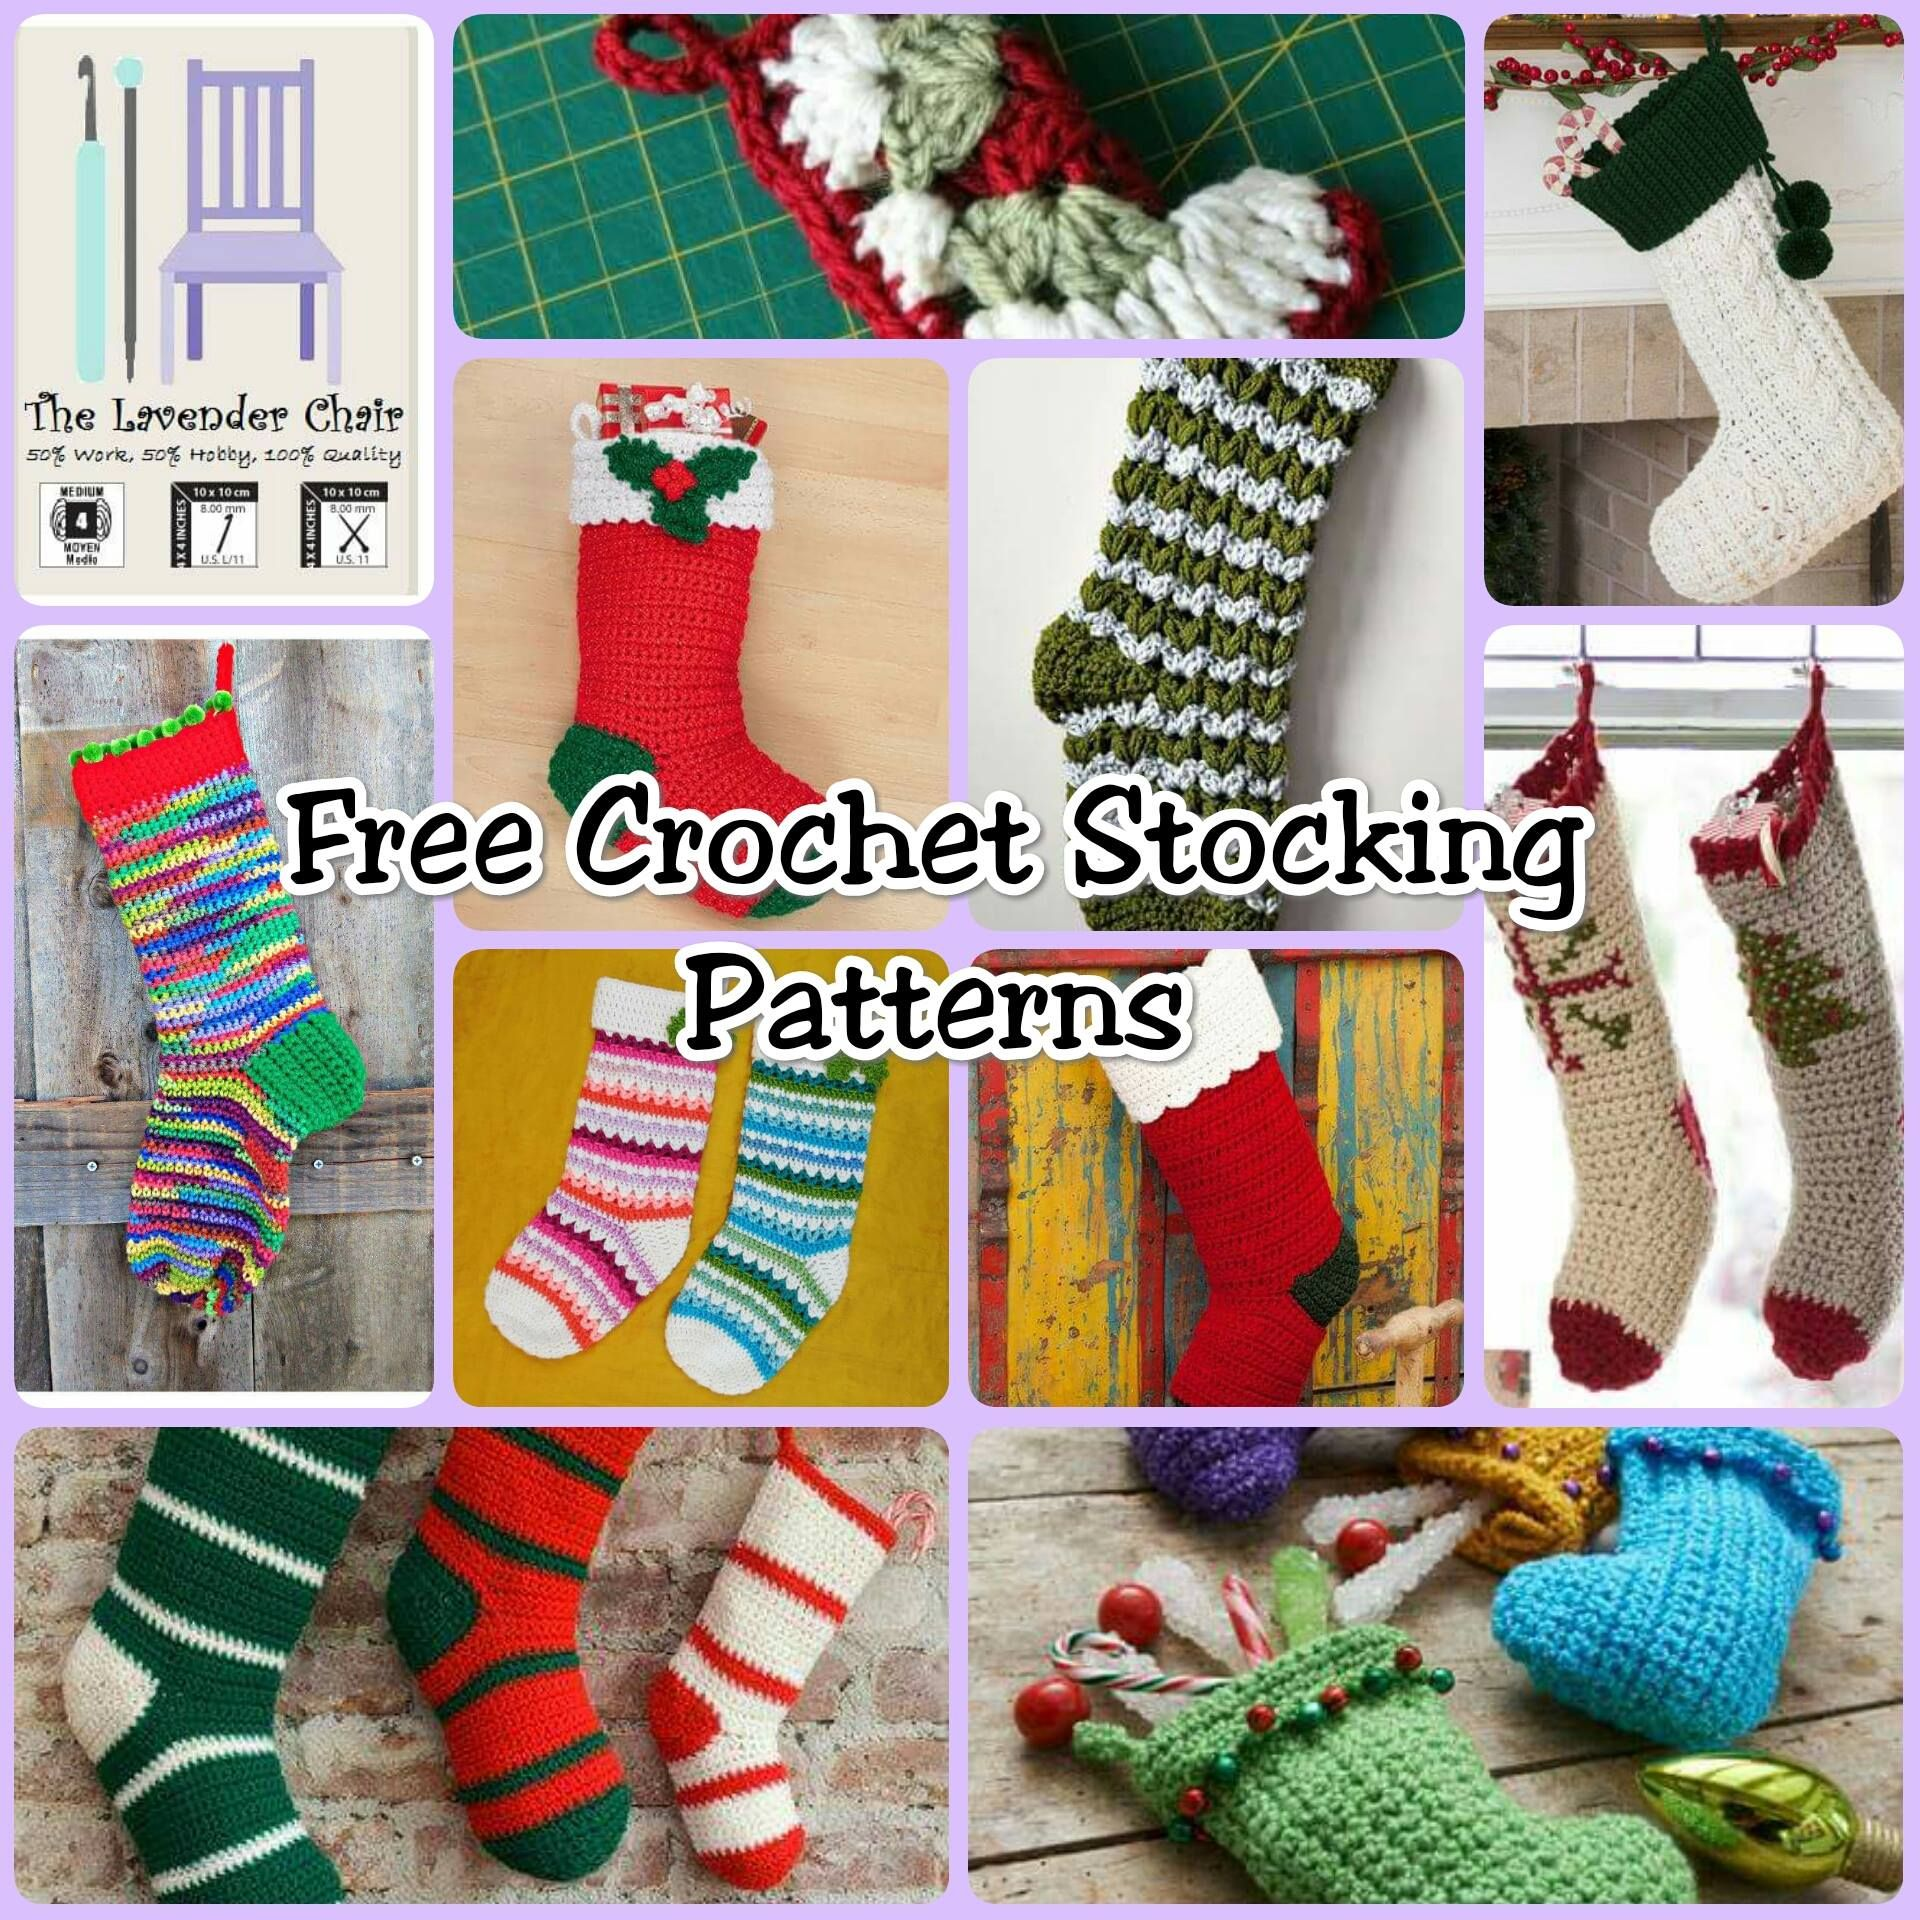 Free Stocking Crochet Patterns My Hobby Is Crochet Collaboration